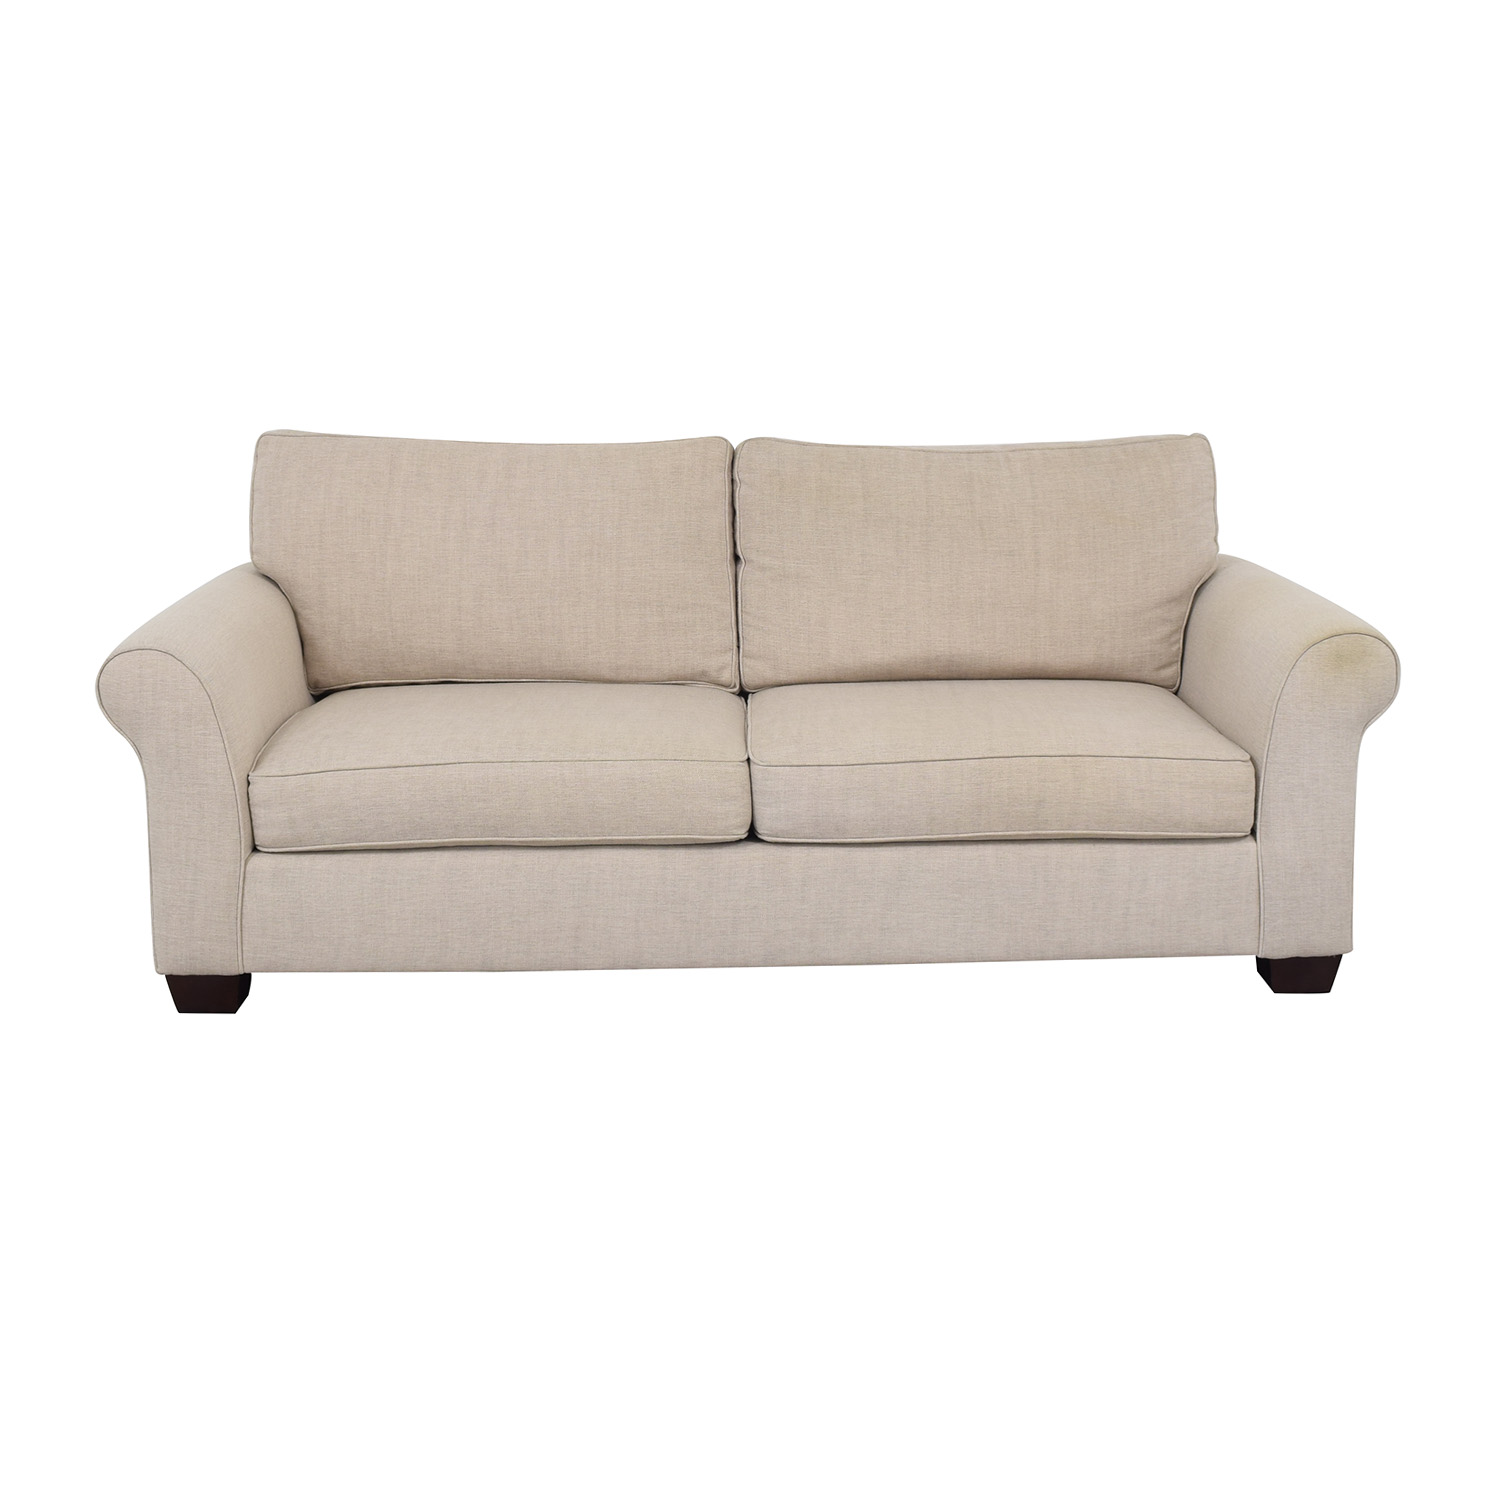 Pottery Barn Pottery Barn Comfort Roll Arm Upholstered Sofa on sale